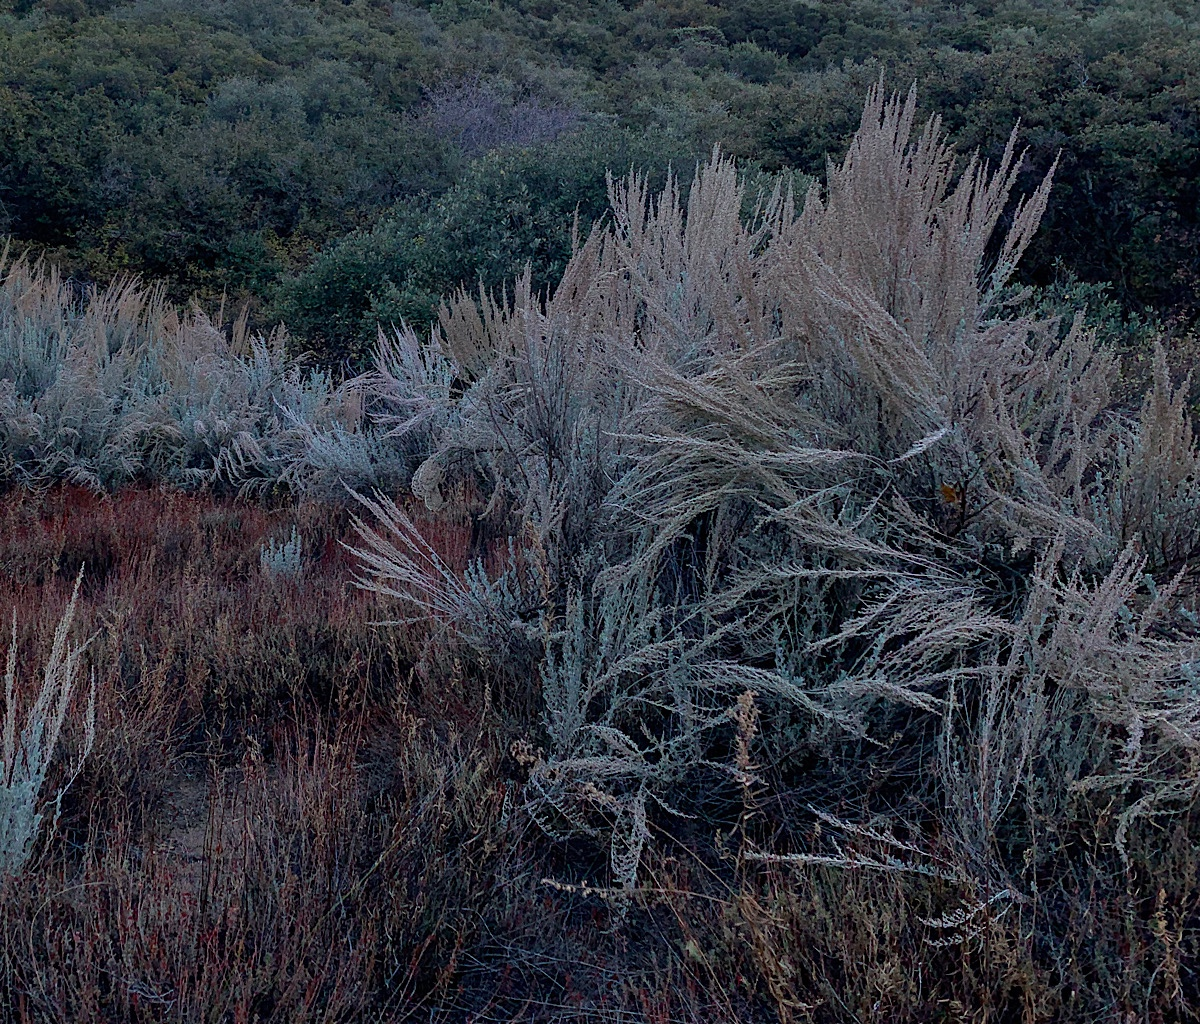 Sagebrush in enormous clumps, the branches akimbo.